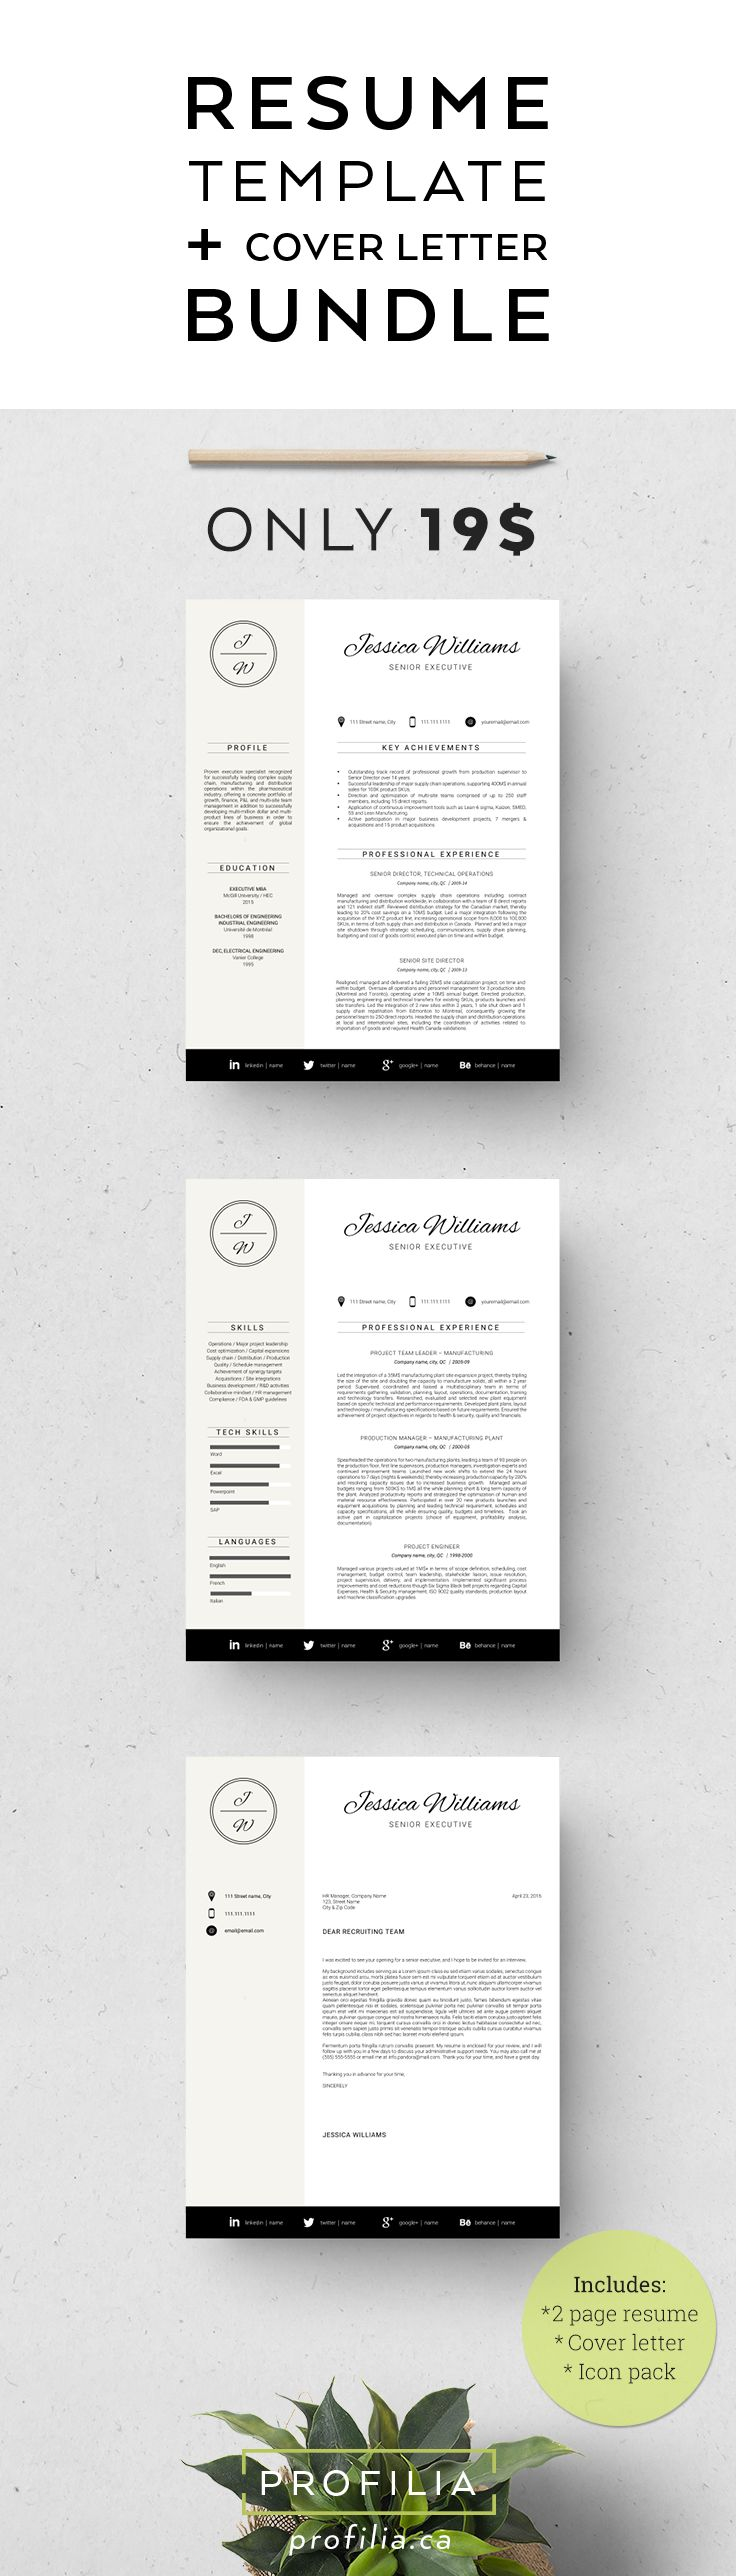 Template For A Cover Letter For A Resume Email Resume Cover Letters